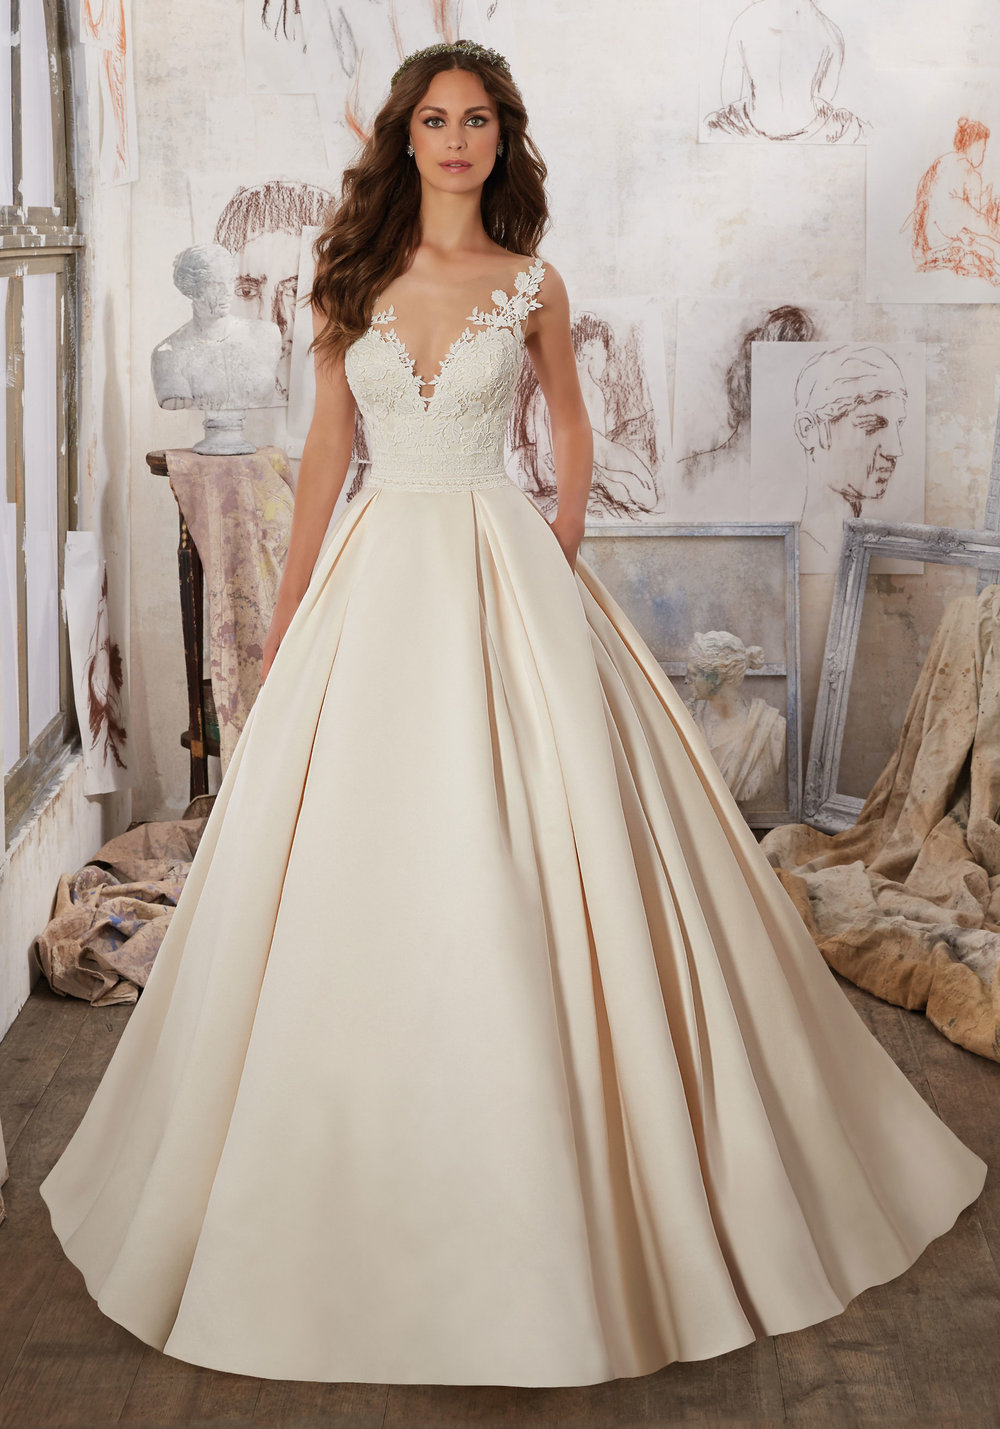 Cap sleeves A-Line satin wedding dress